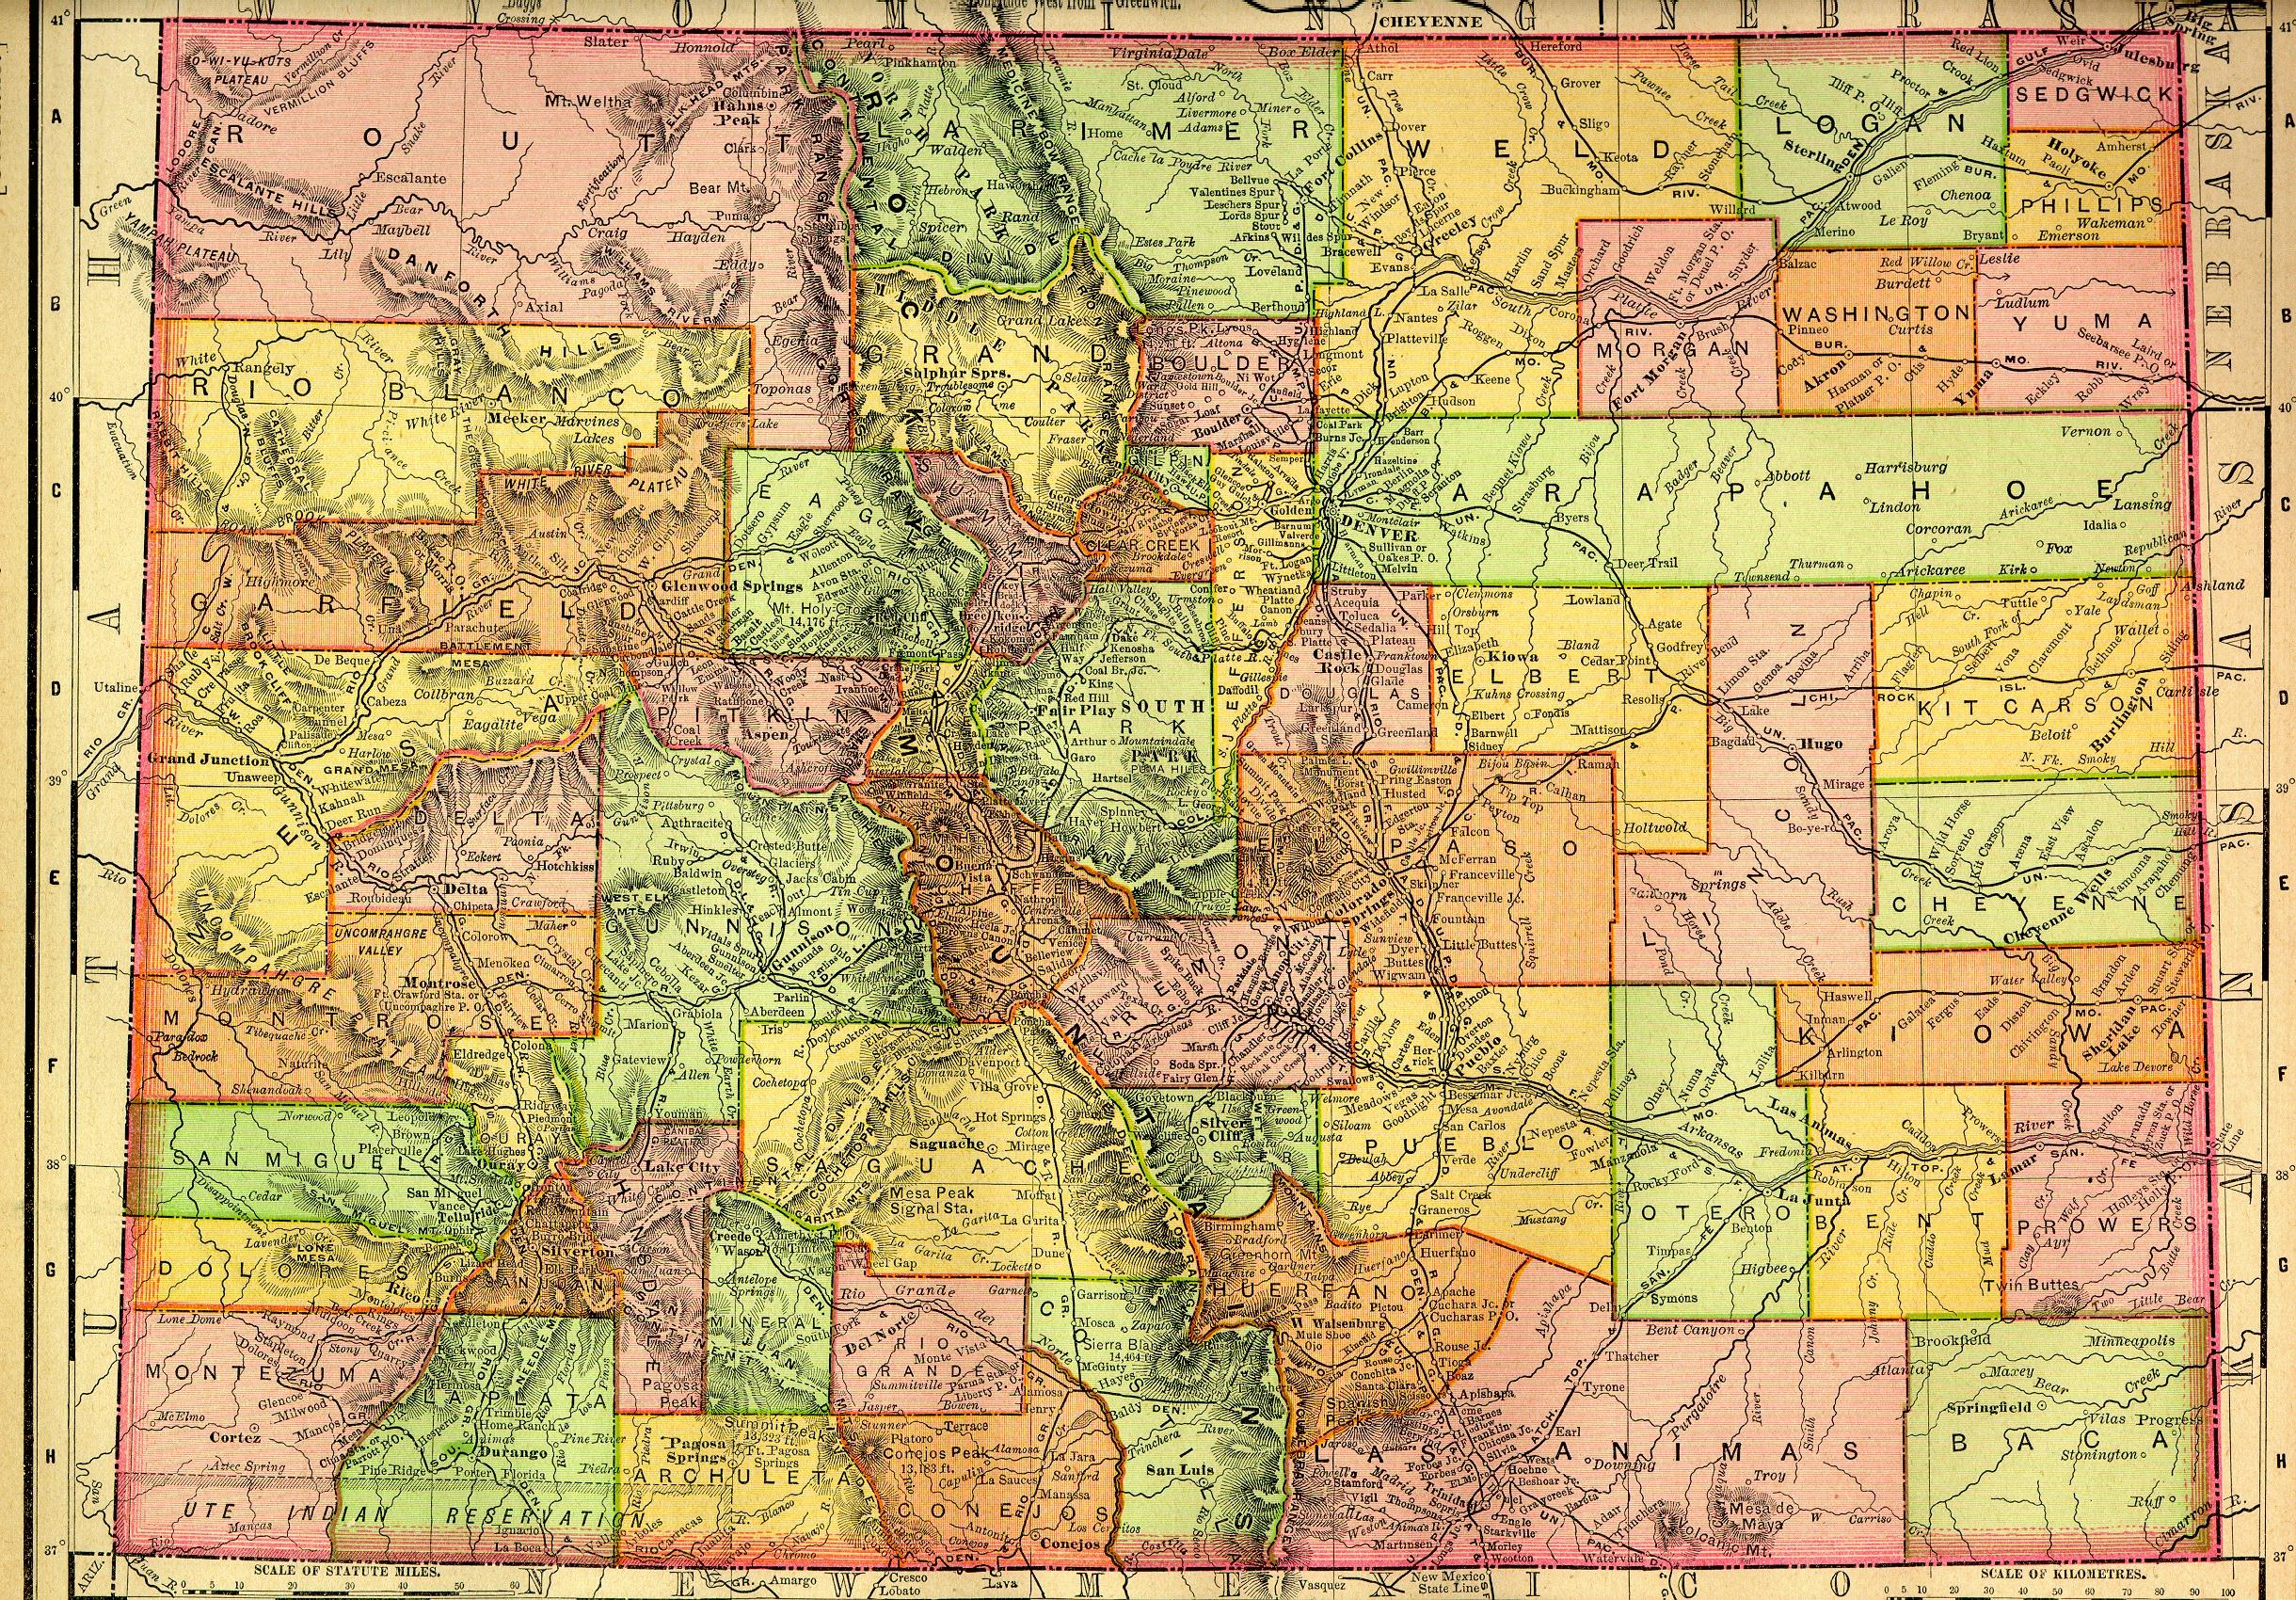 Colorado Maps. US Digital Map Library, Table of Contents Page